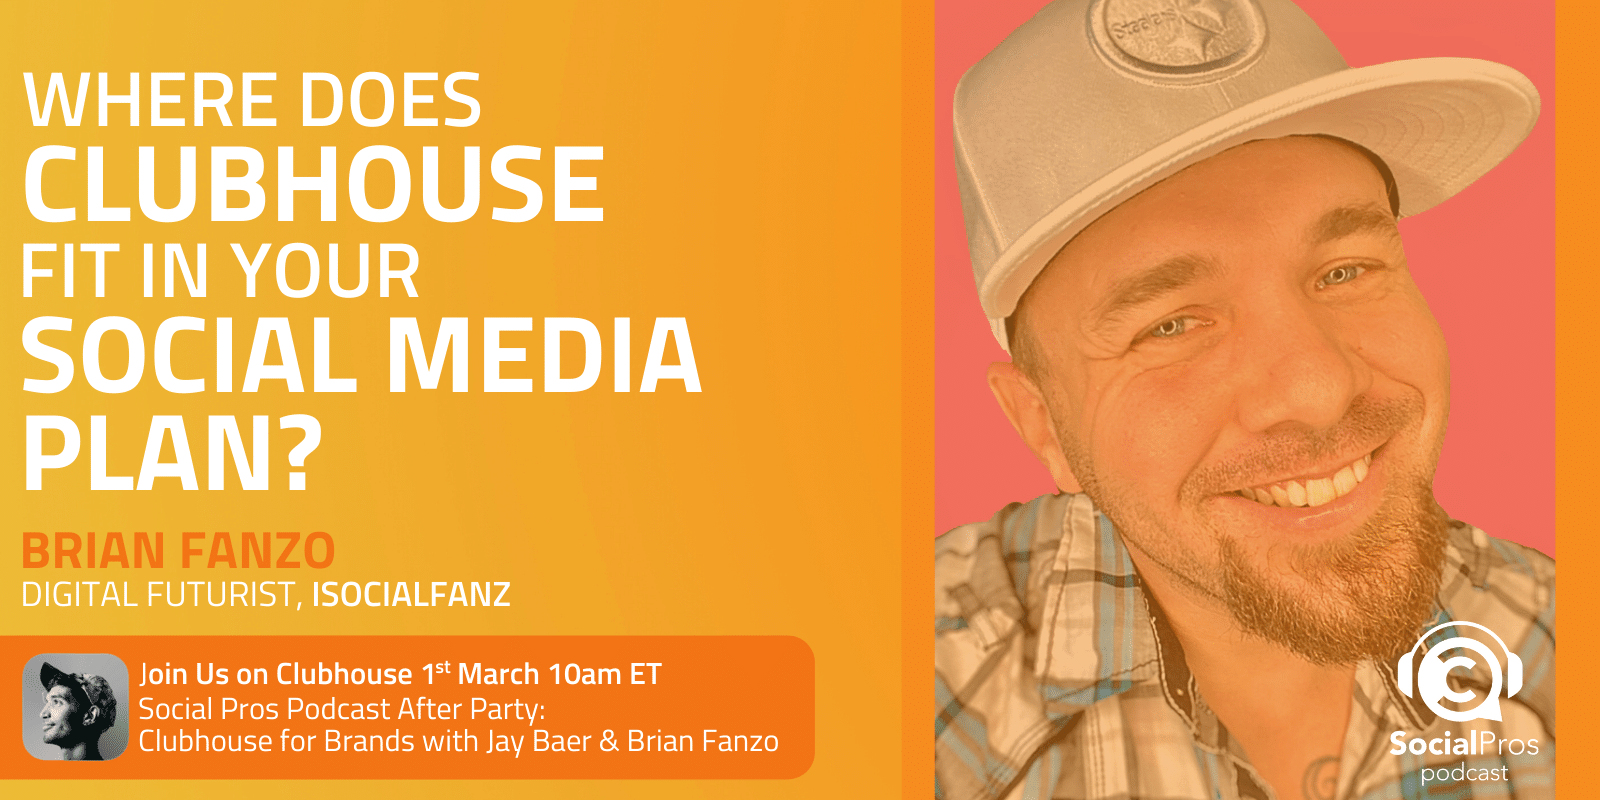 Where Does Clubhouse Fit in Your Social Media Plan